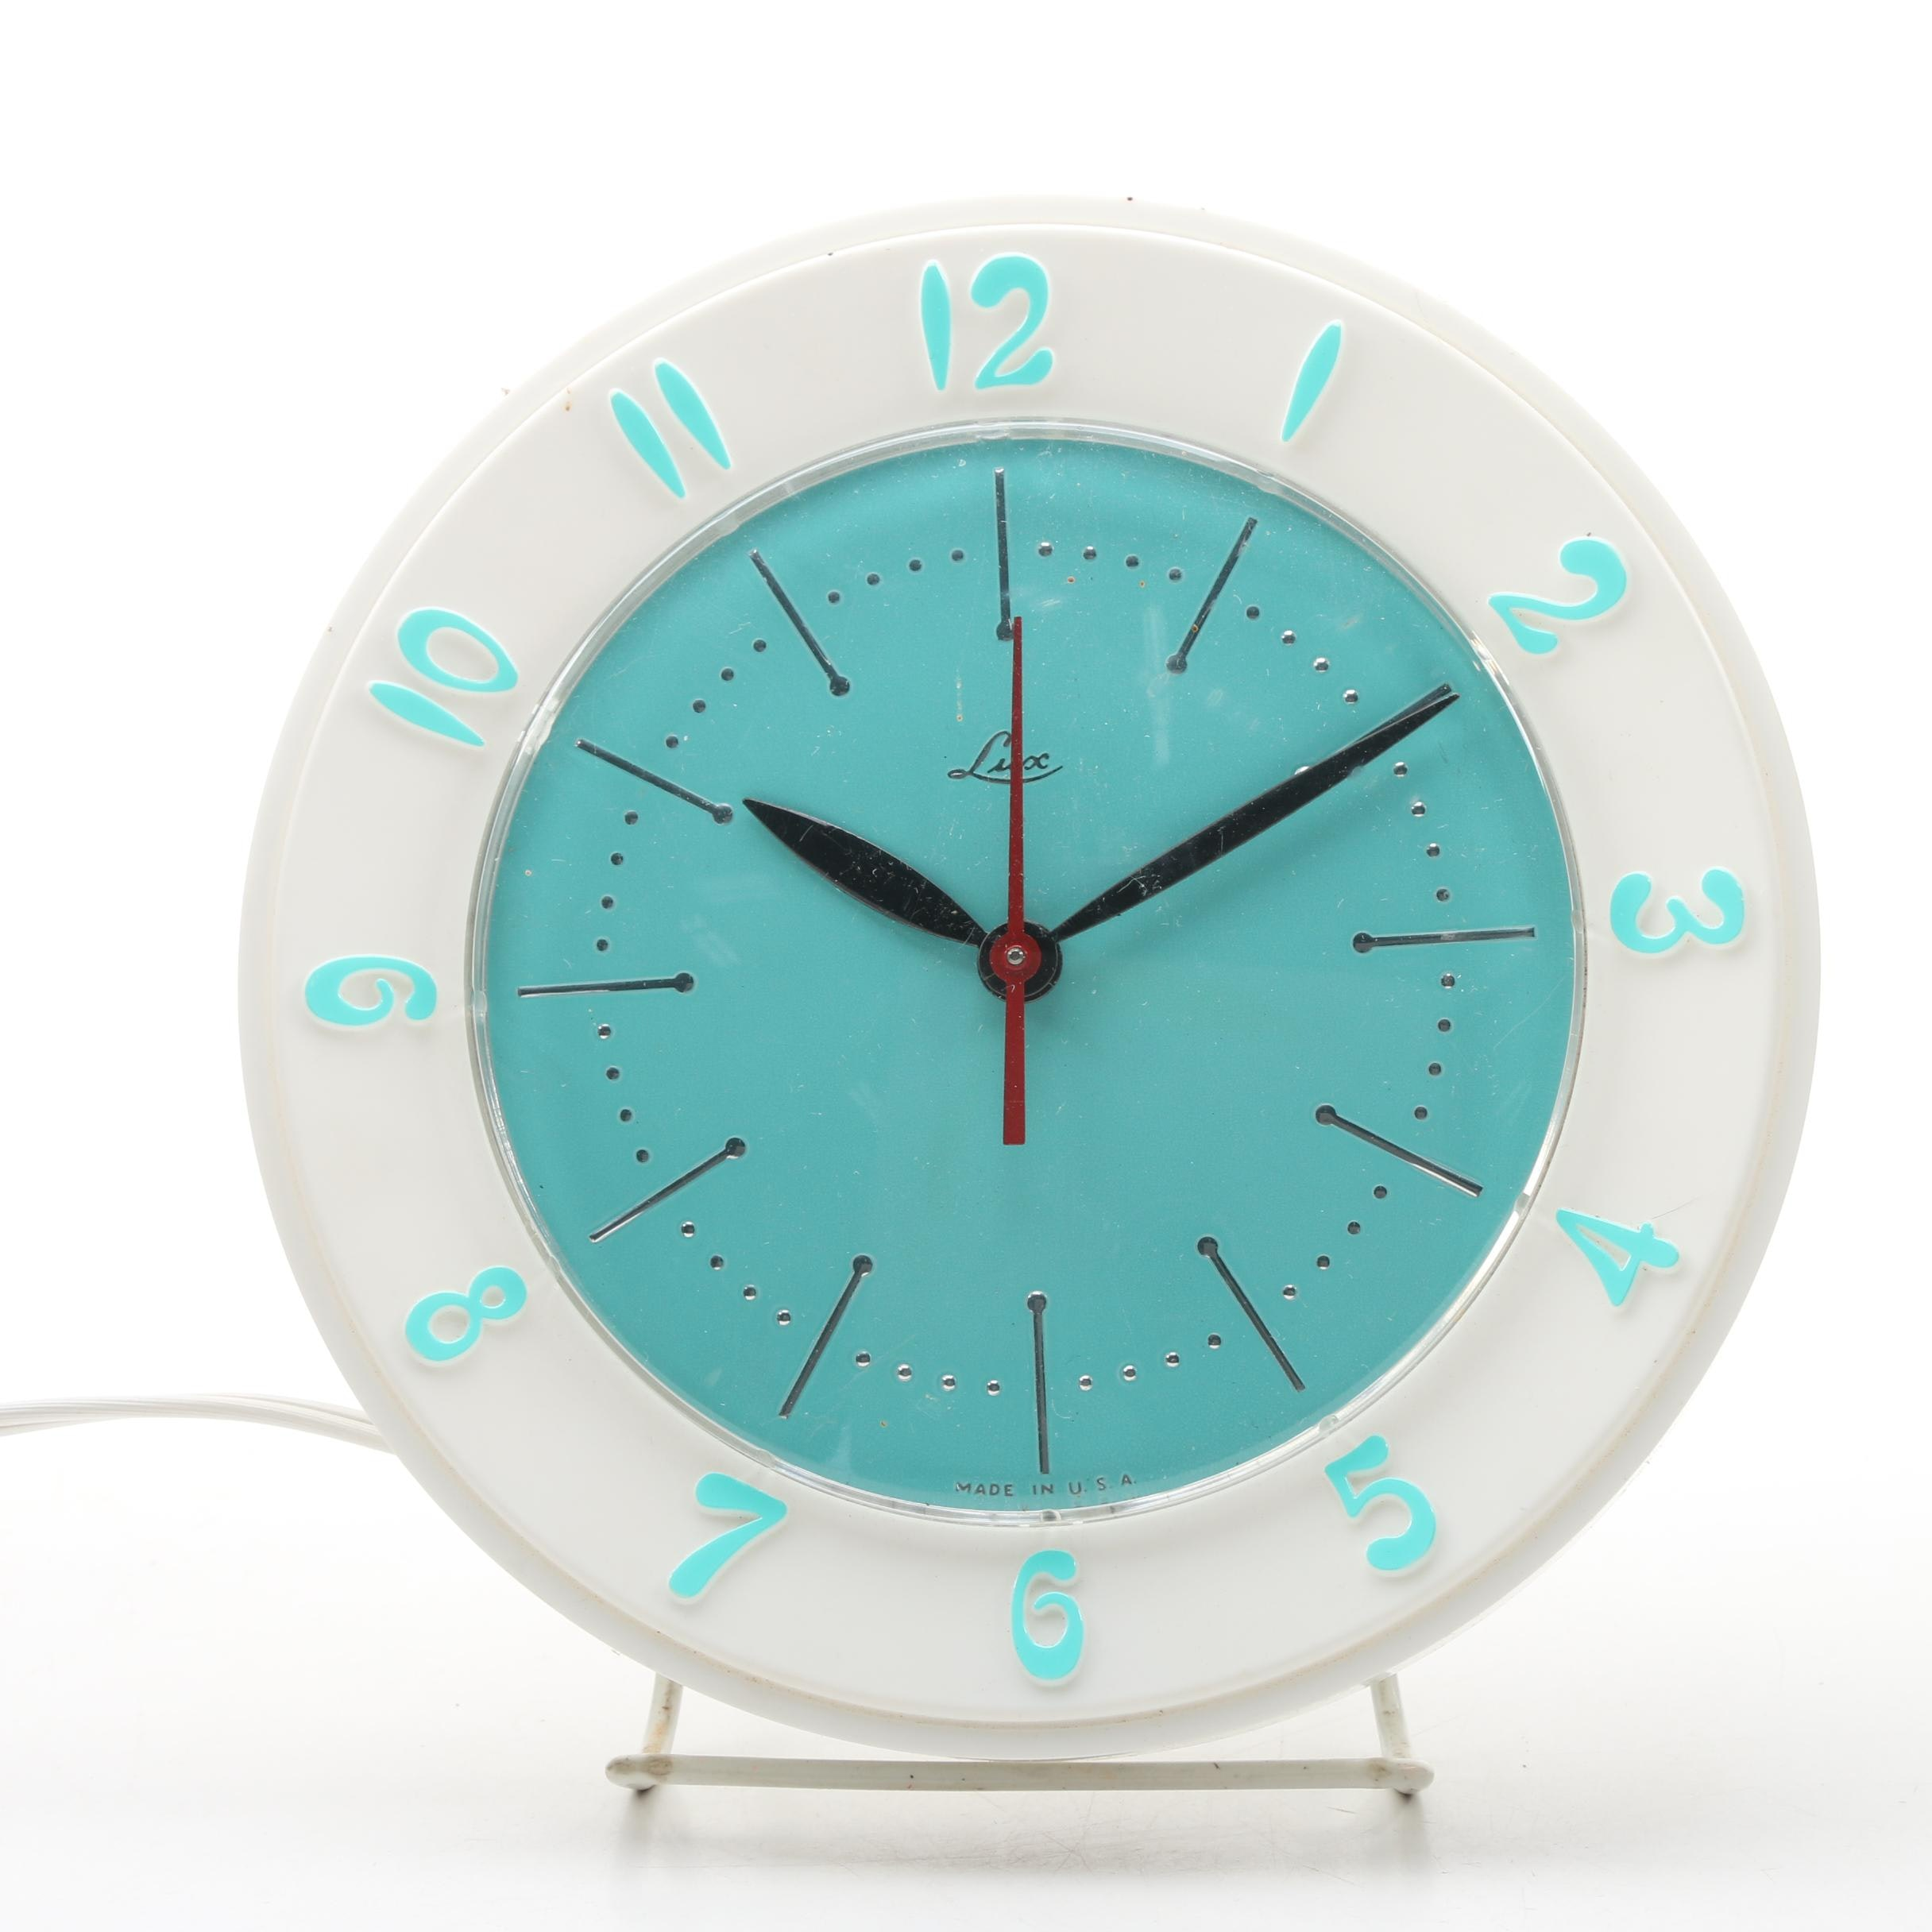 Lux Teal and White Electric Wall Clock, Mid-Century